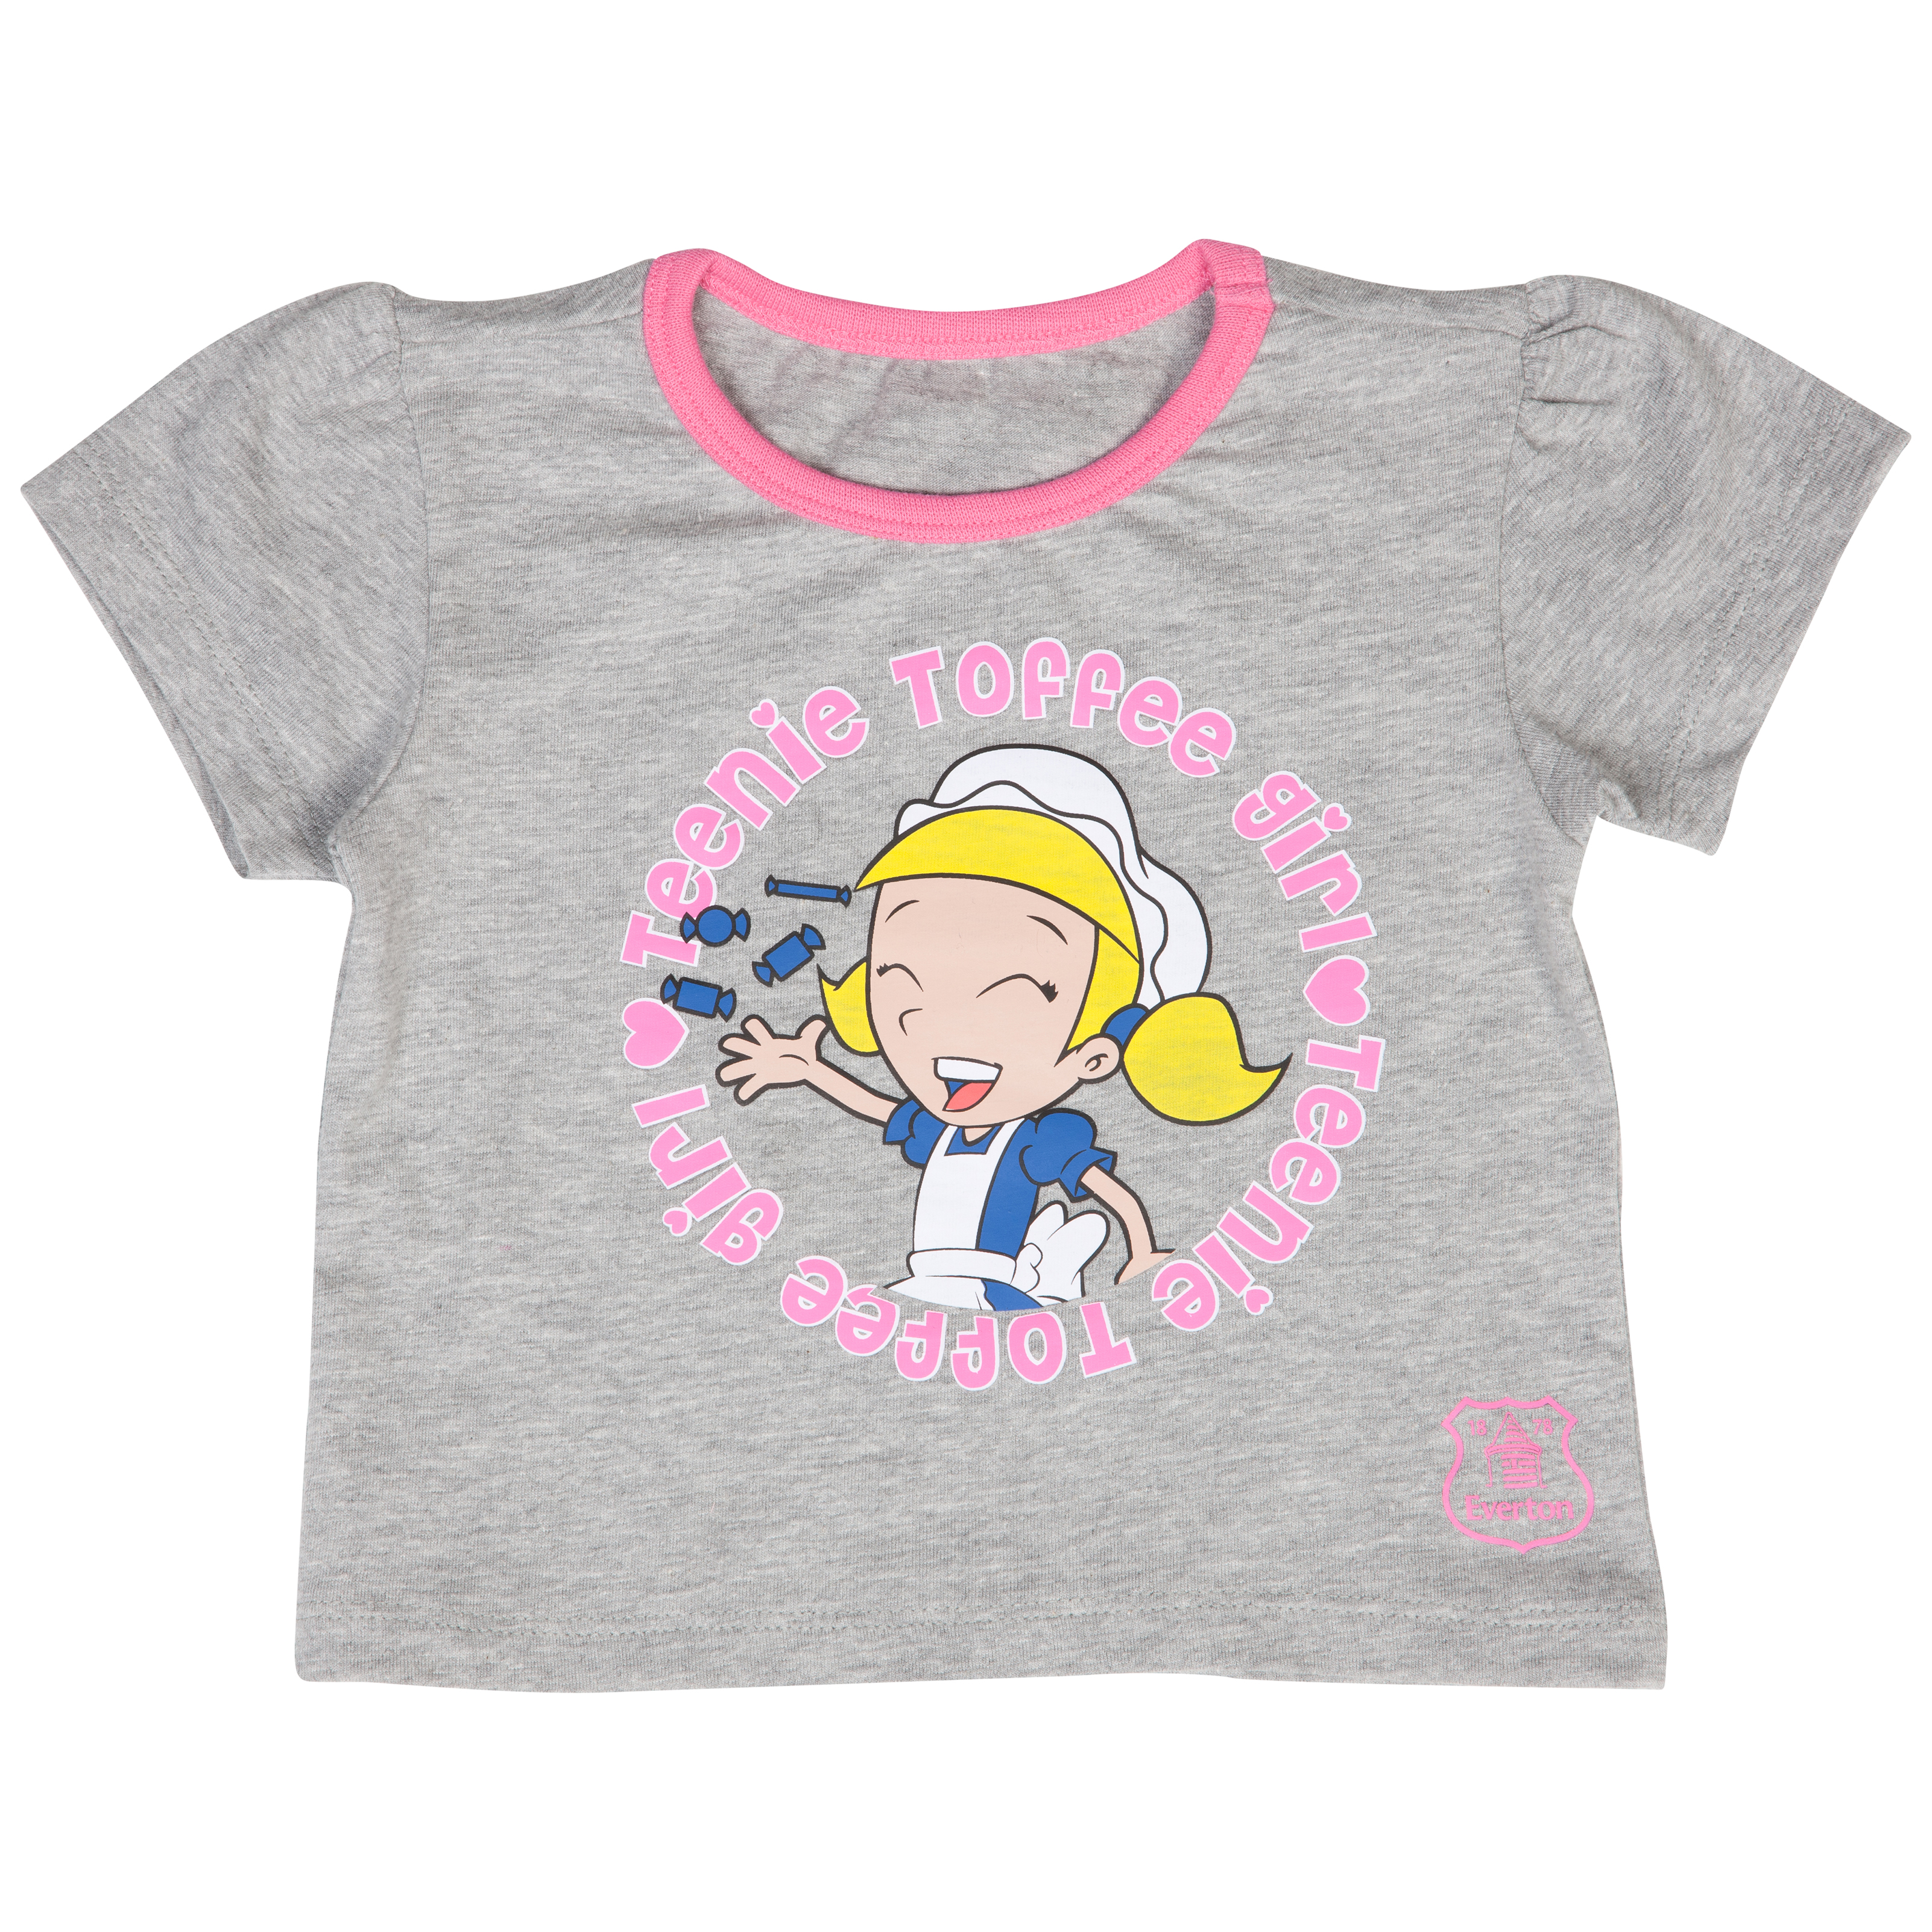 Everton Mascot T-Shirt - Grey/Pink